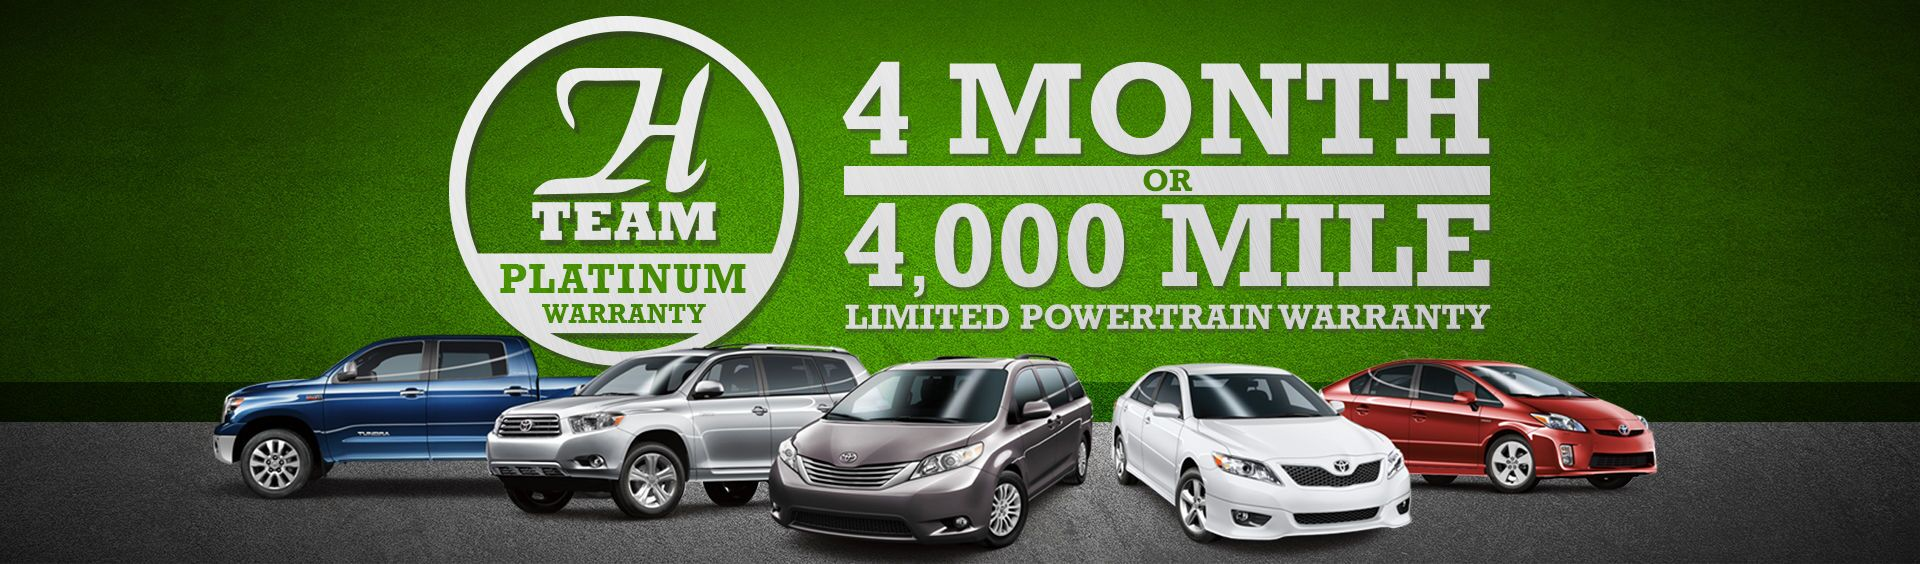 H-Team Platinum Warranty at Heritage Toyota